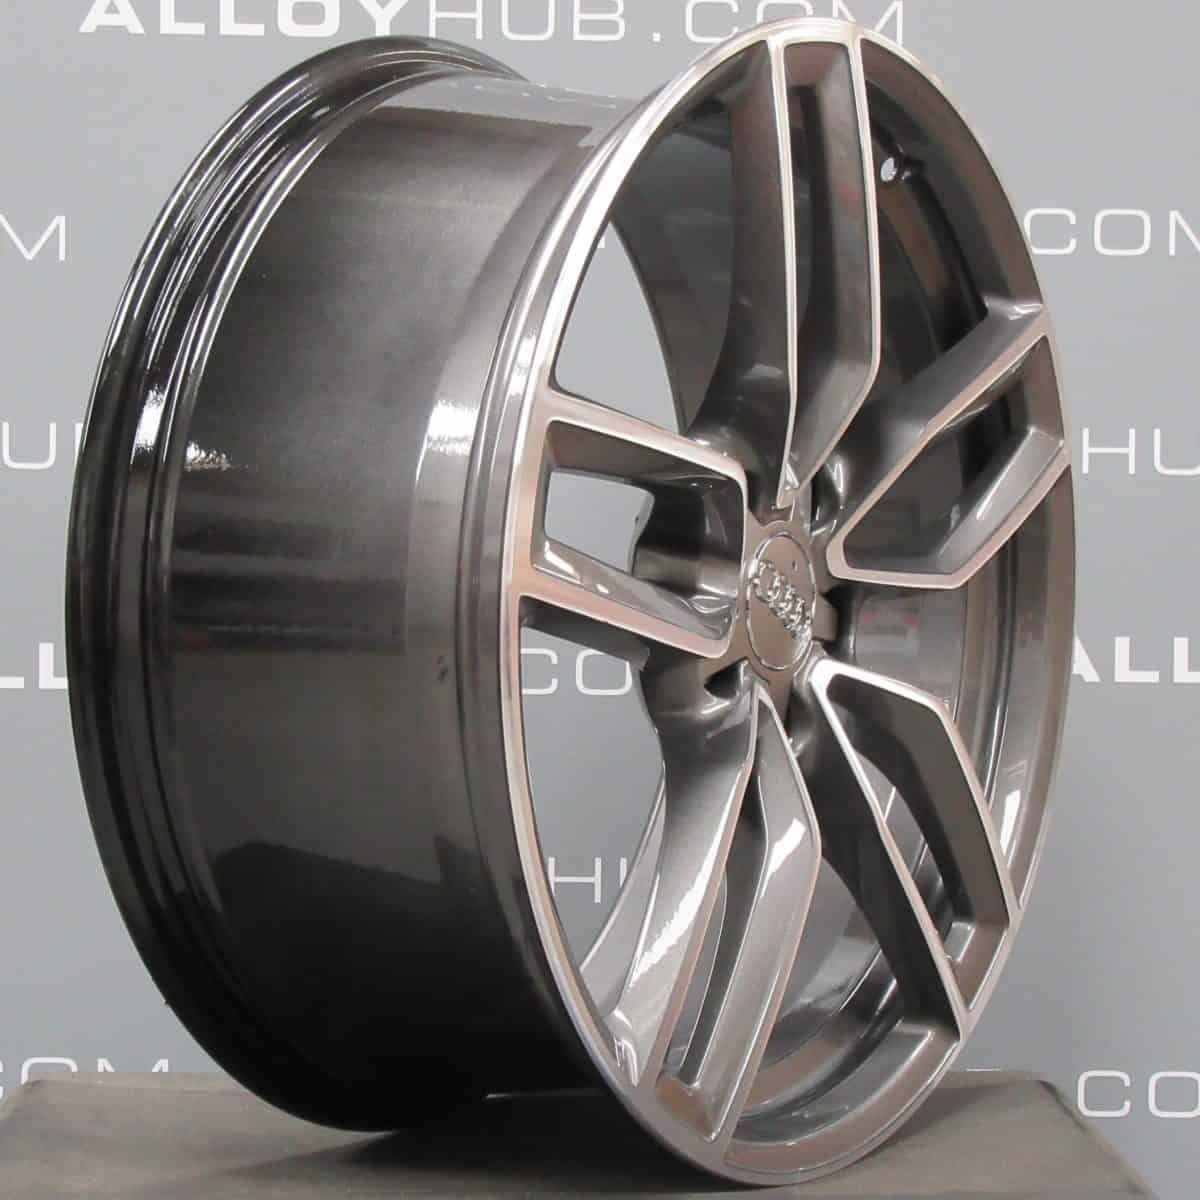 """Genuine Audi RS3 S3 A3 8V 5 Twin Spoke 19"""" Inch Alloy Wheels with Grey & Diamond Turned Finish 8V0 601 025 AB"""